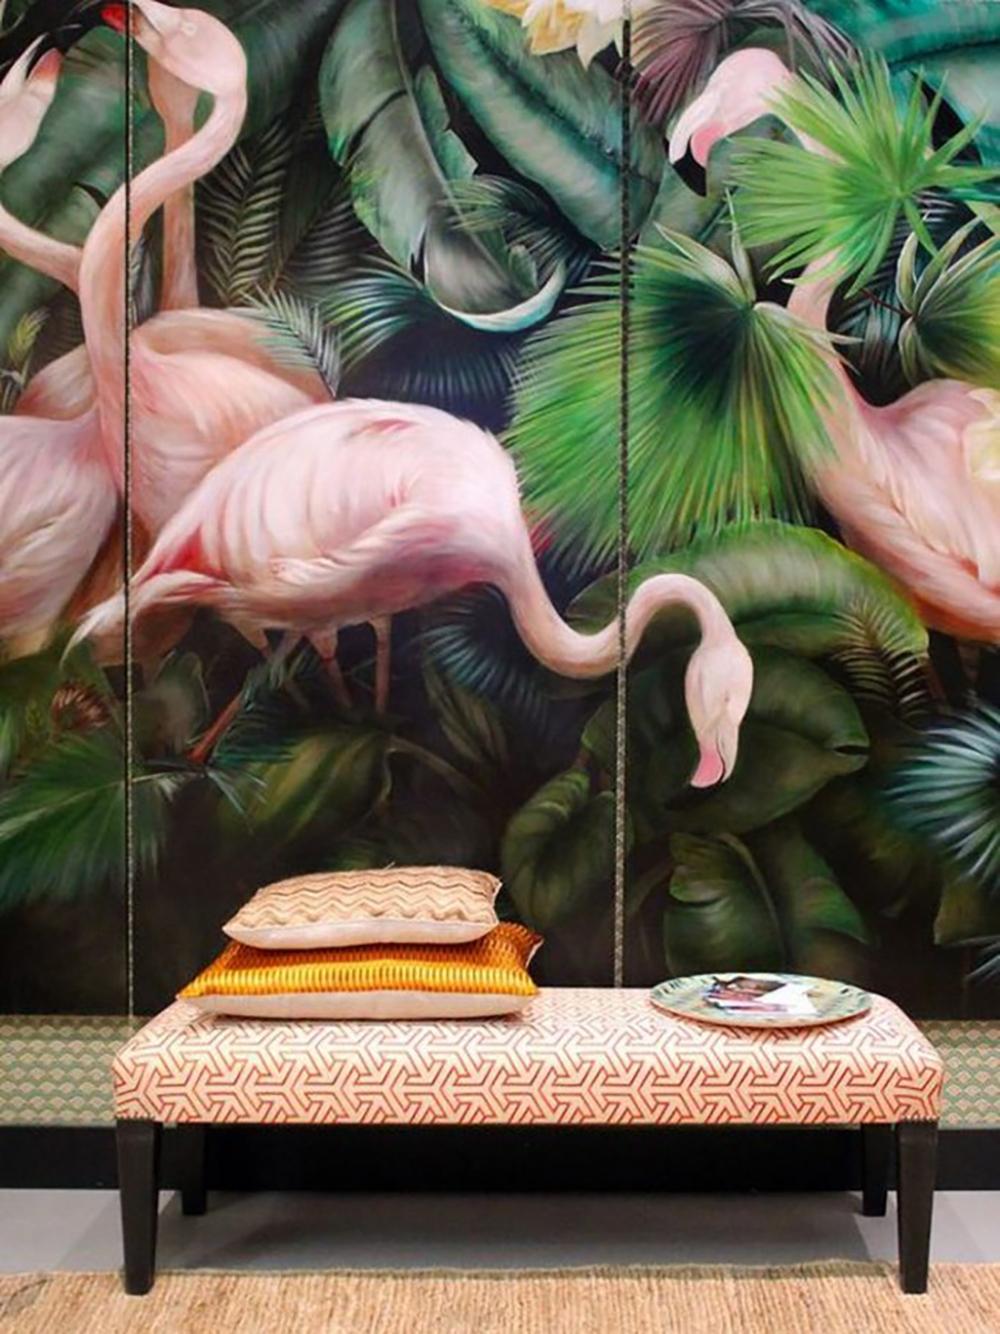 Flamingo wallcovering - Paintings, prints inspired by jungle - Transform your home into a tropical paradise | Aliz's Wonderland